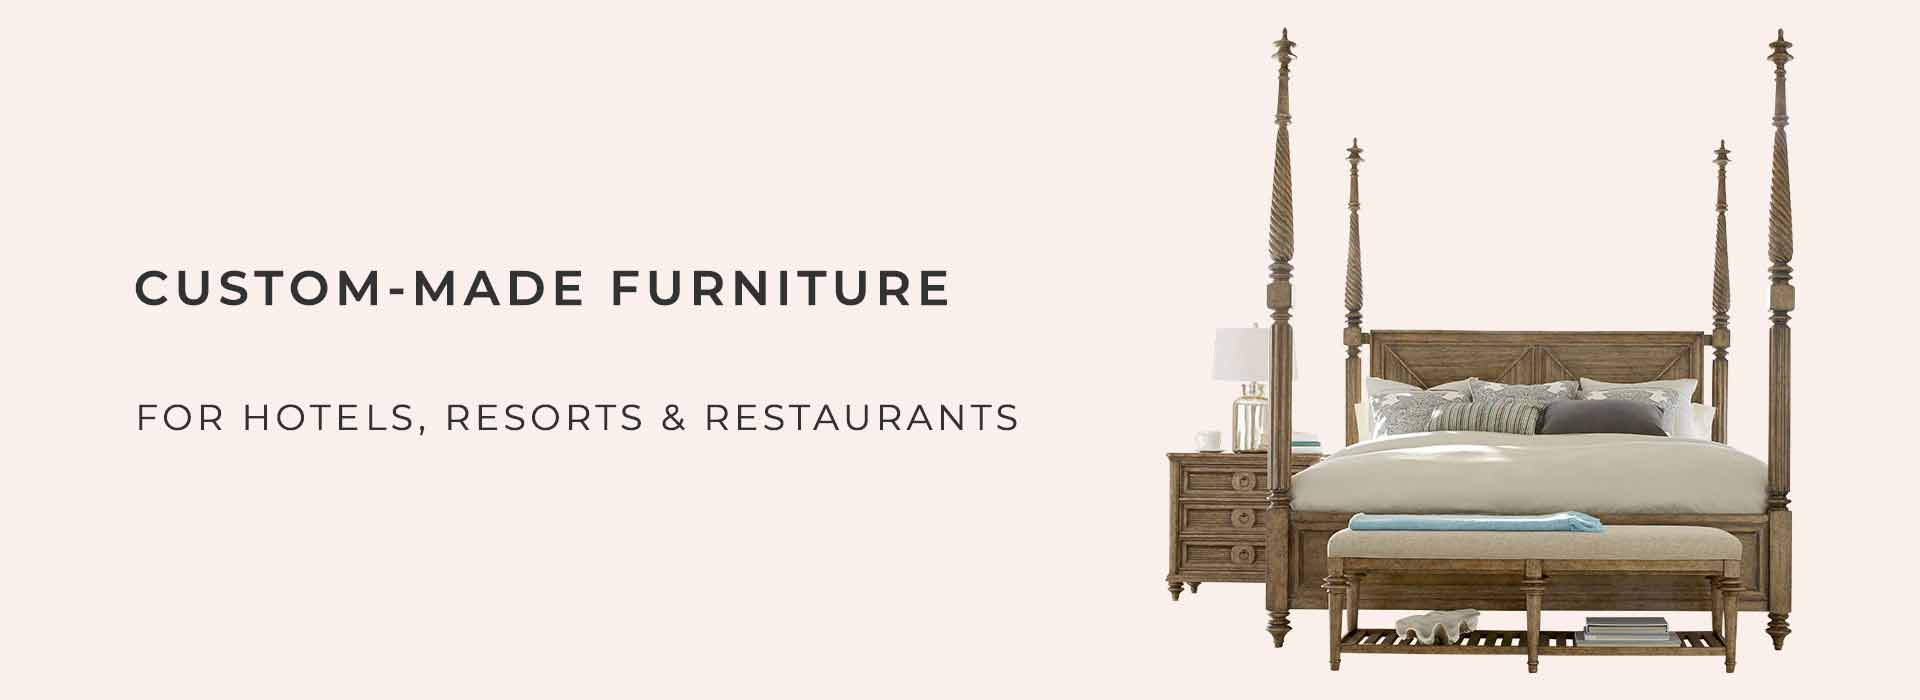 FurnitureRoots is a Bespoke Hotel & Resort and Restaurant Bar & Cafe Furniture Manufacturer & Exporter